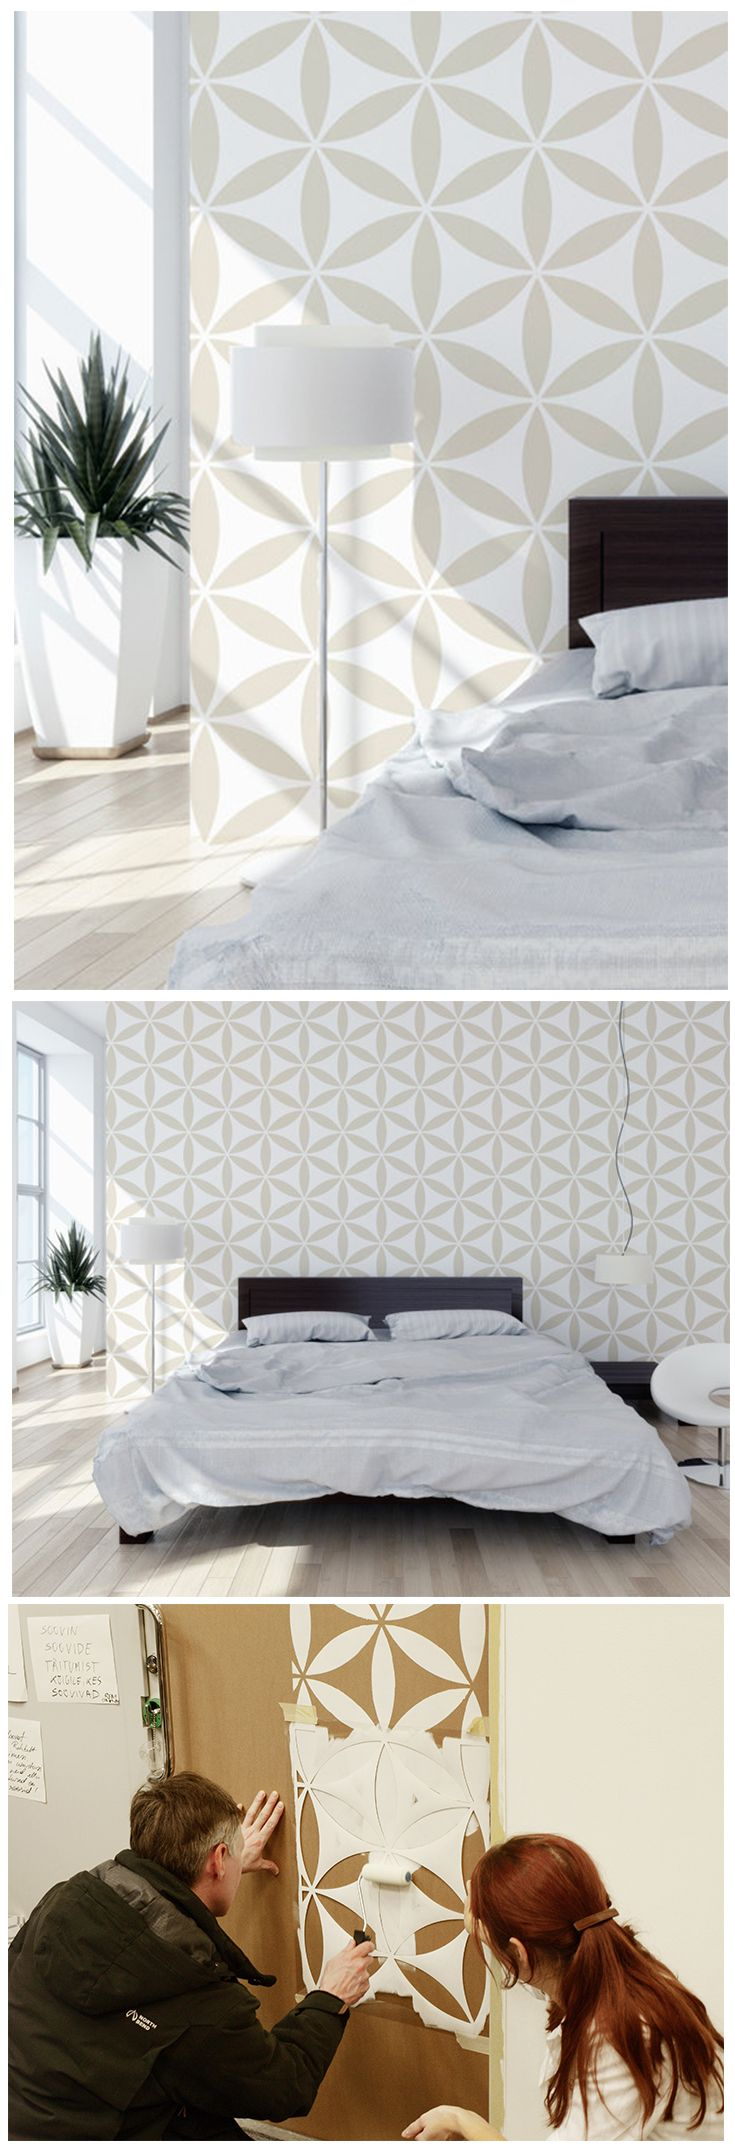 Chrysanthemum wall stencil images home wall decoration ideas chrysanthemum wall stencil choice image home wall decoration ideas chrysanthemum wall stencil choice image home wall amipublicfo Image collections